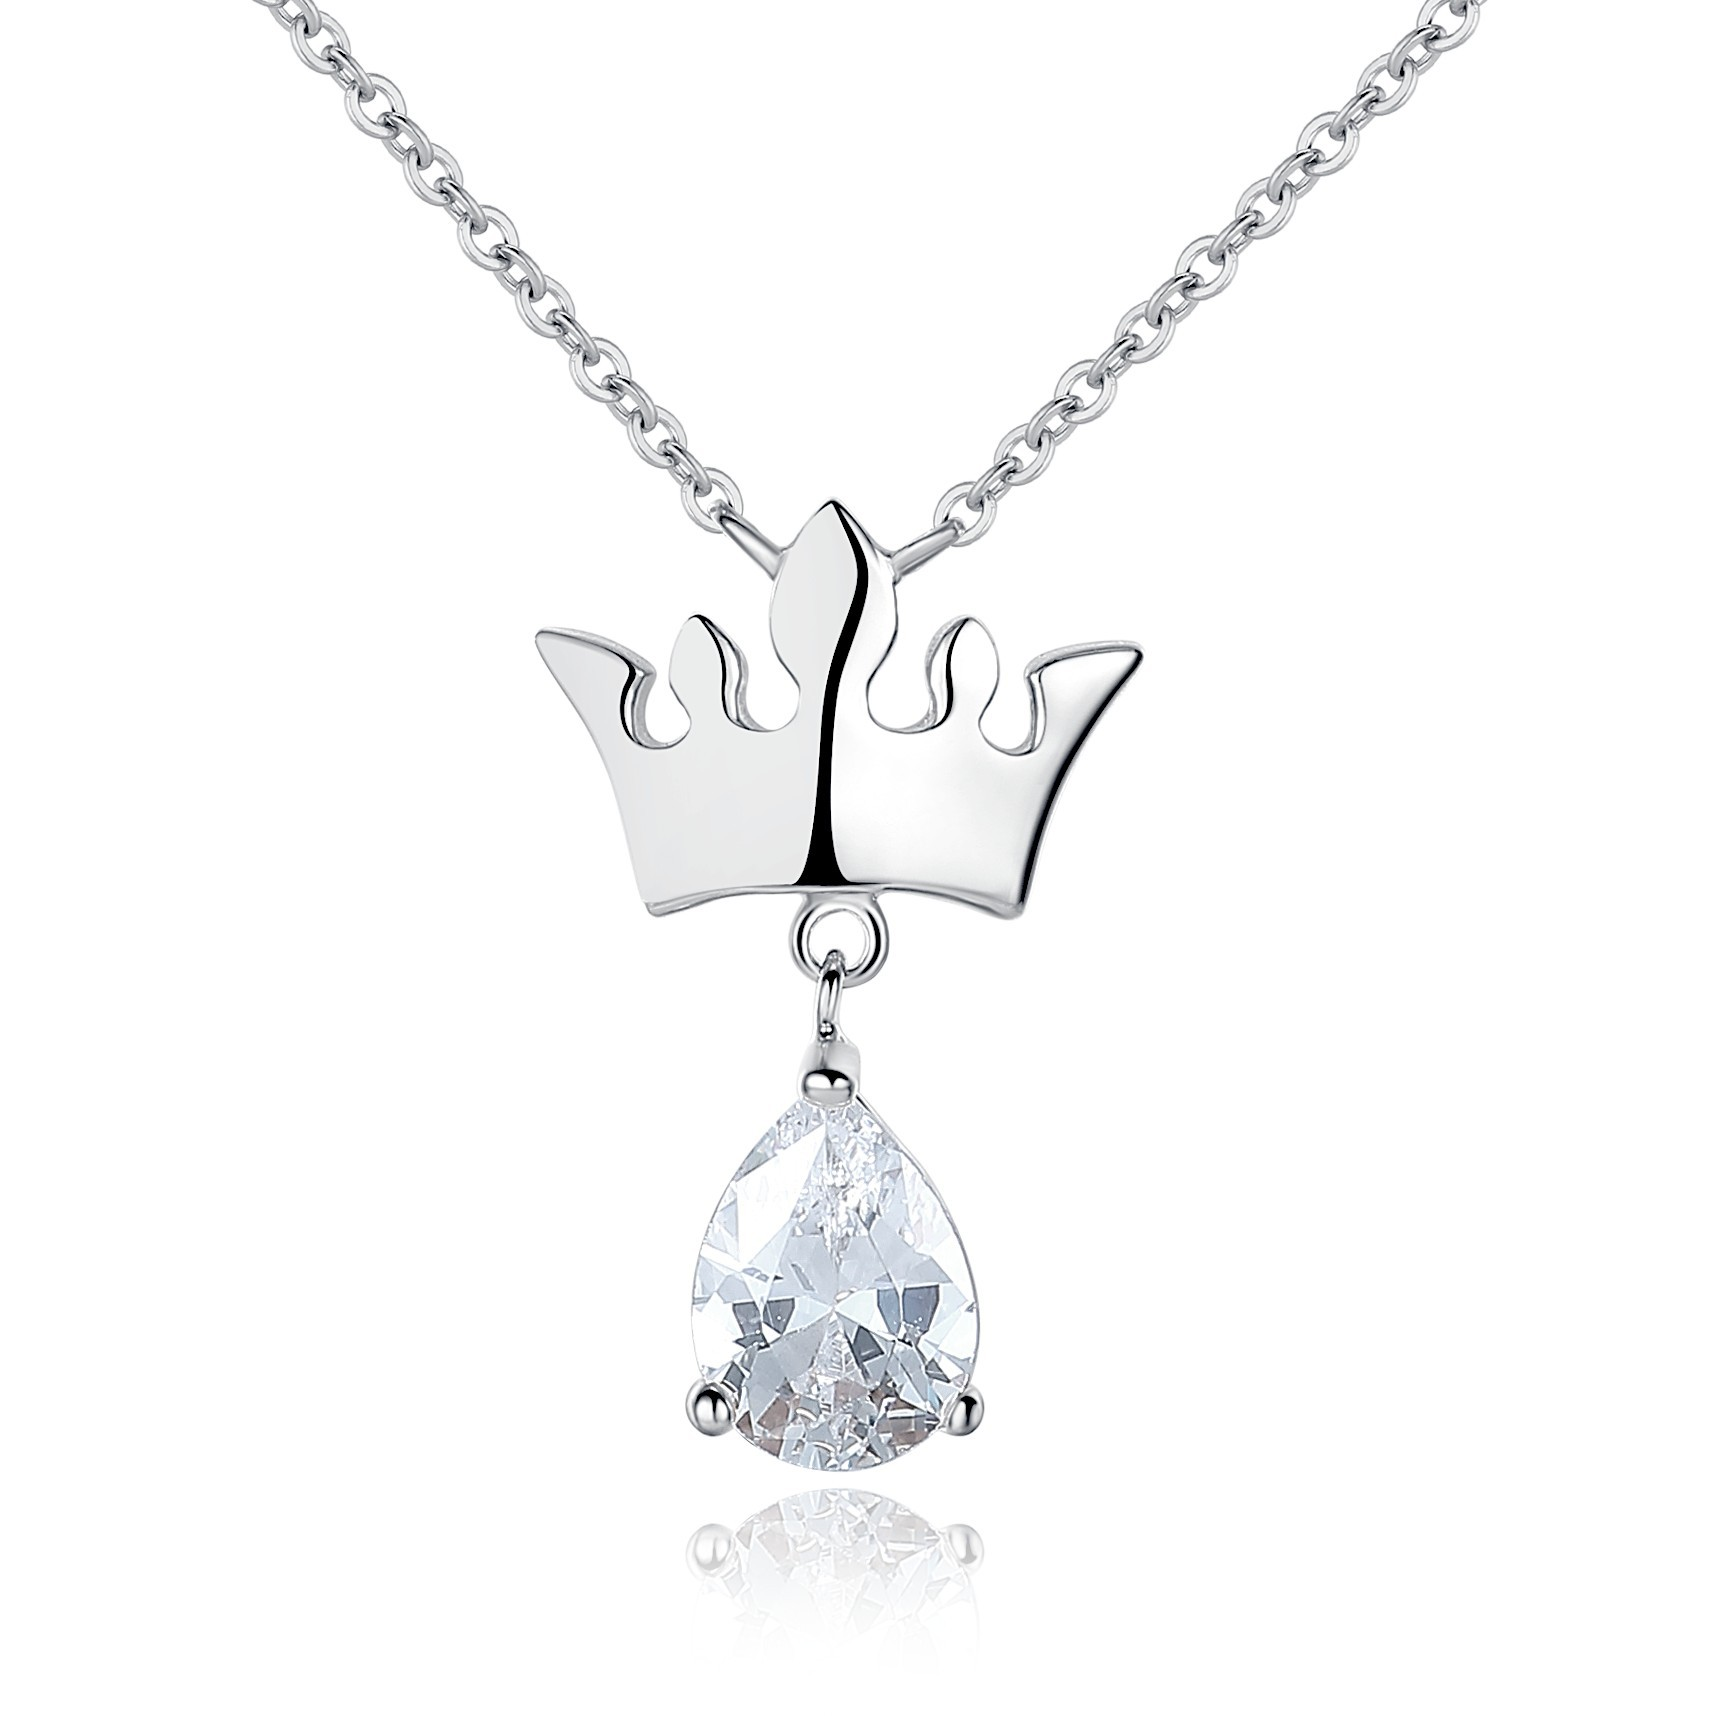 Womens sterling silver crown with dangling tear drop cubic zirconia womens sterling silver crown with dangling tear drop cubic zirconia pendant necklace jewelry aloadofball Image collections